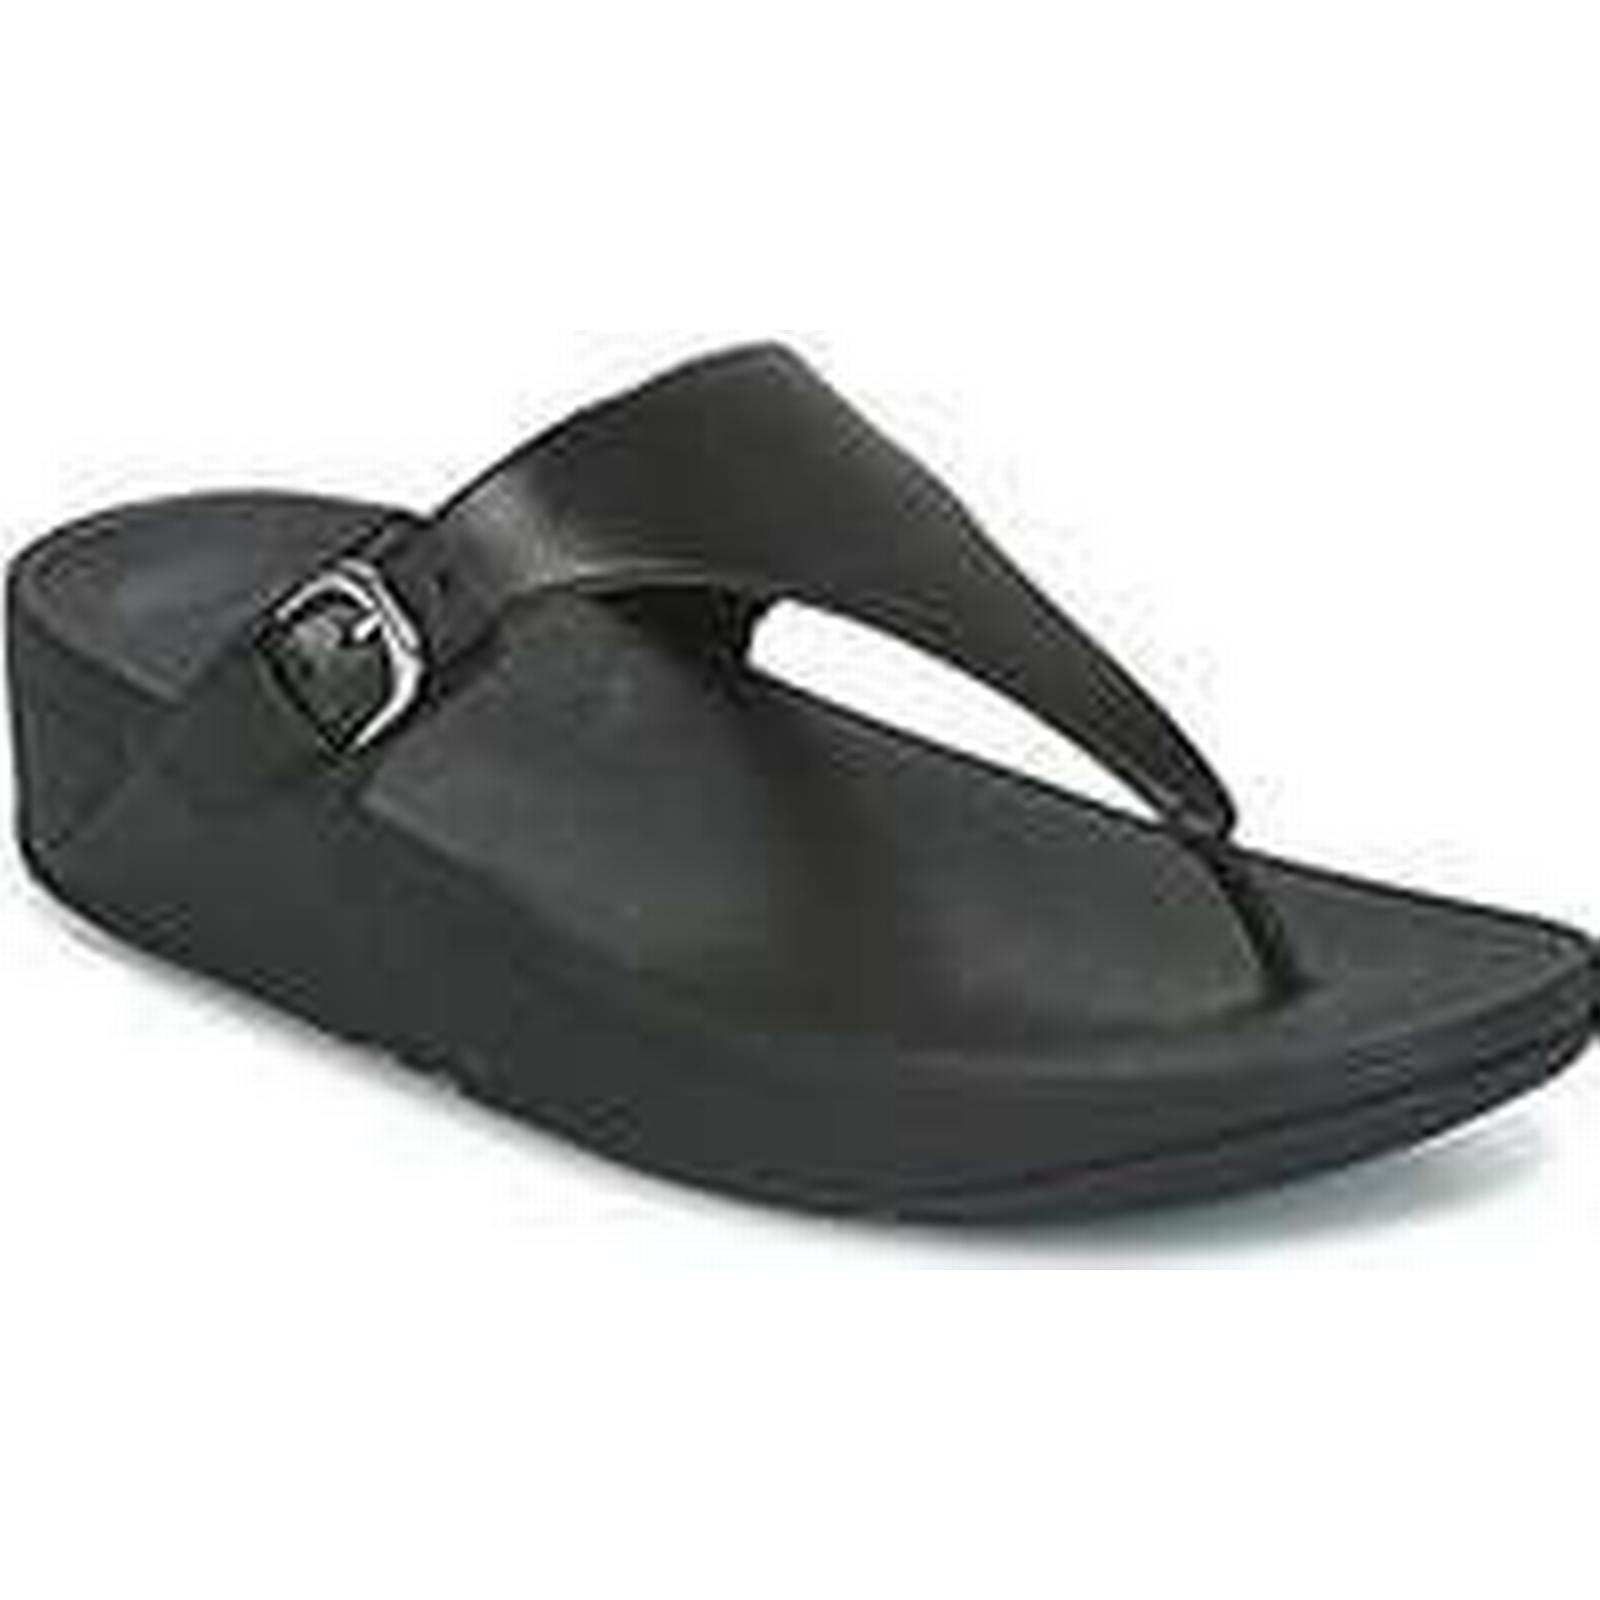 Spartoo.co.uk Shoes FitFlop SKINNY TOE-THONG women's Shoes Spartoo.co.uk (Trainers) in Black c18bb8